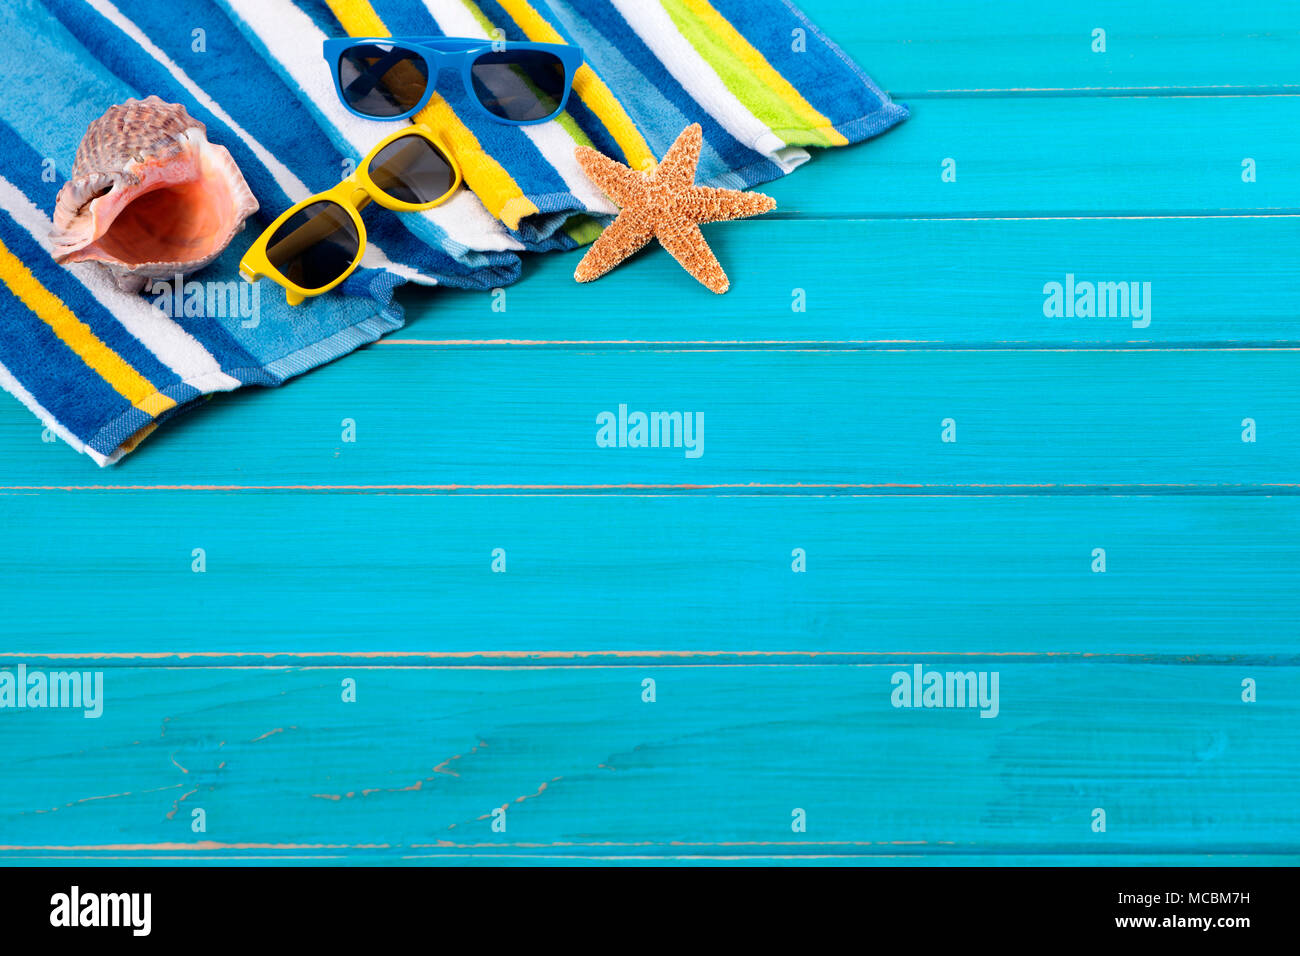 Beach scene with striped towel, sunglasses, starfish and ...